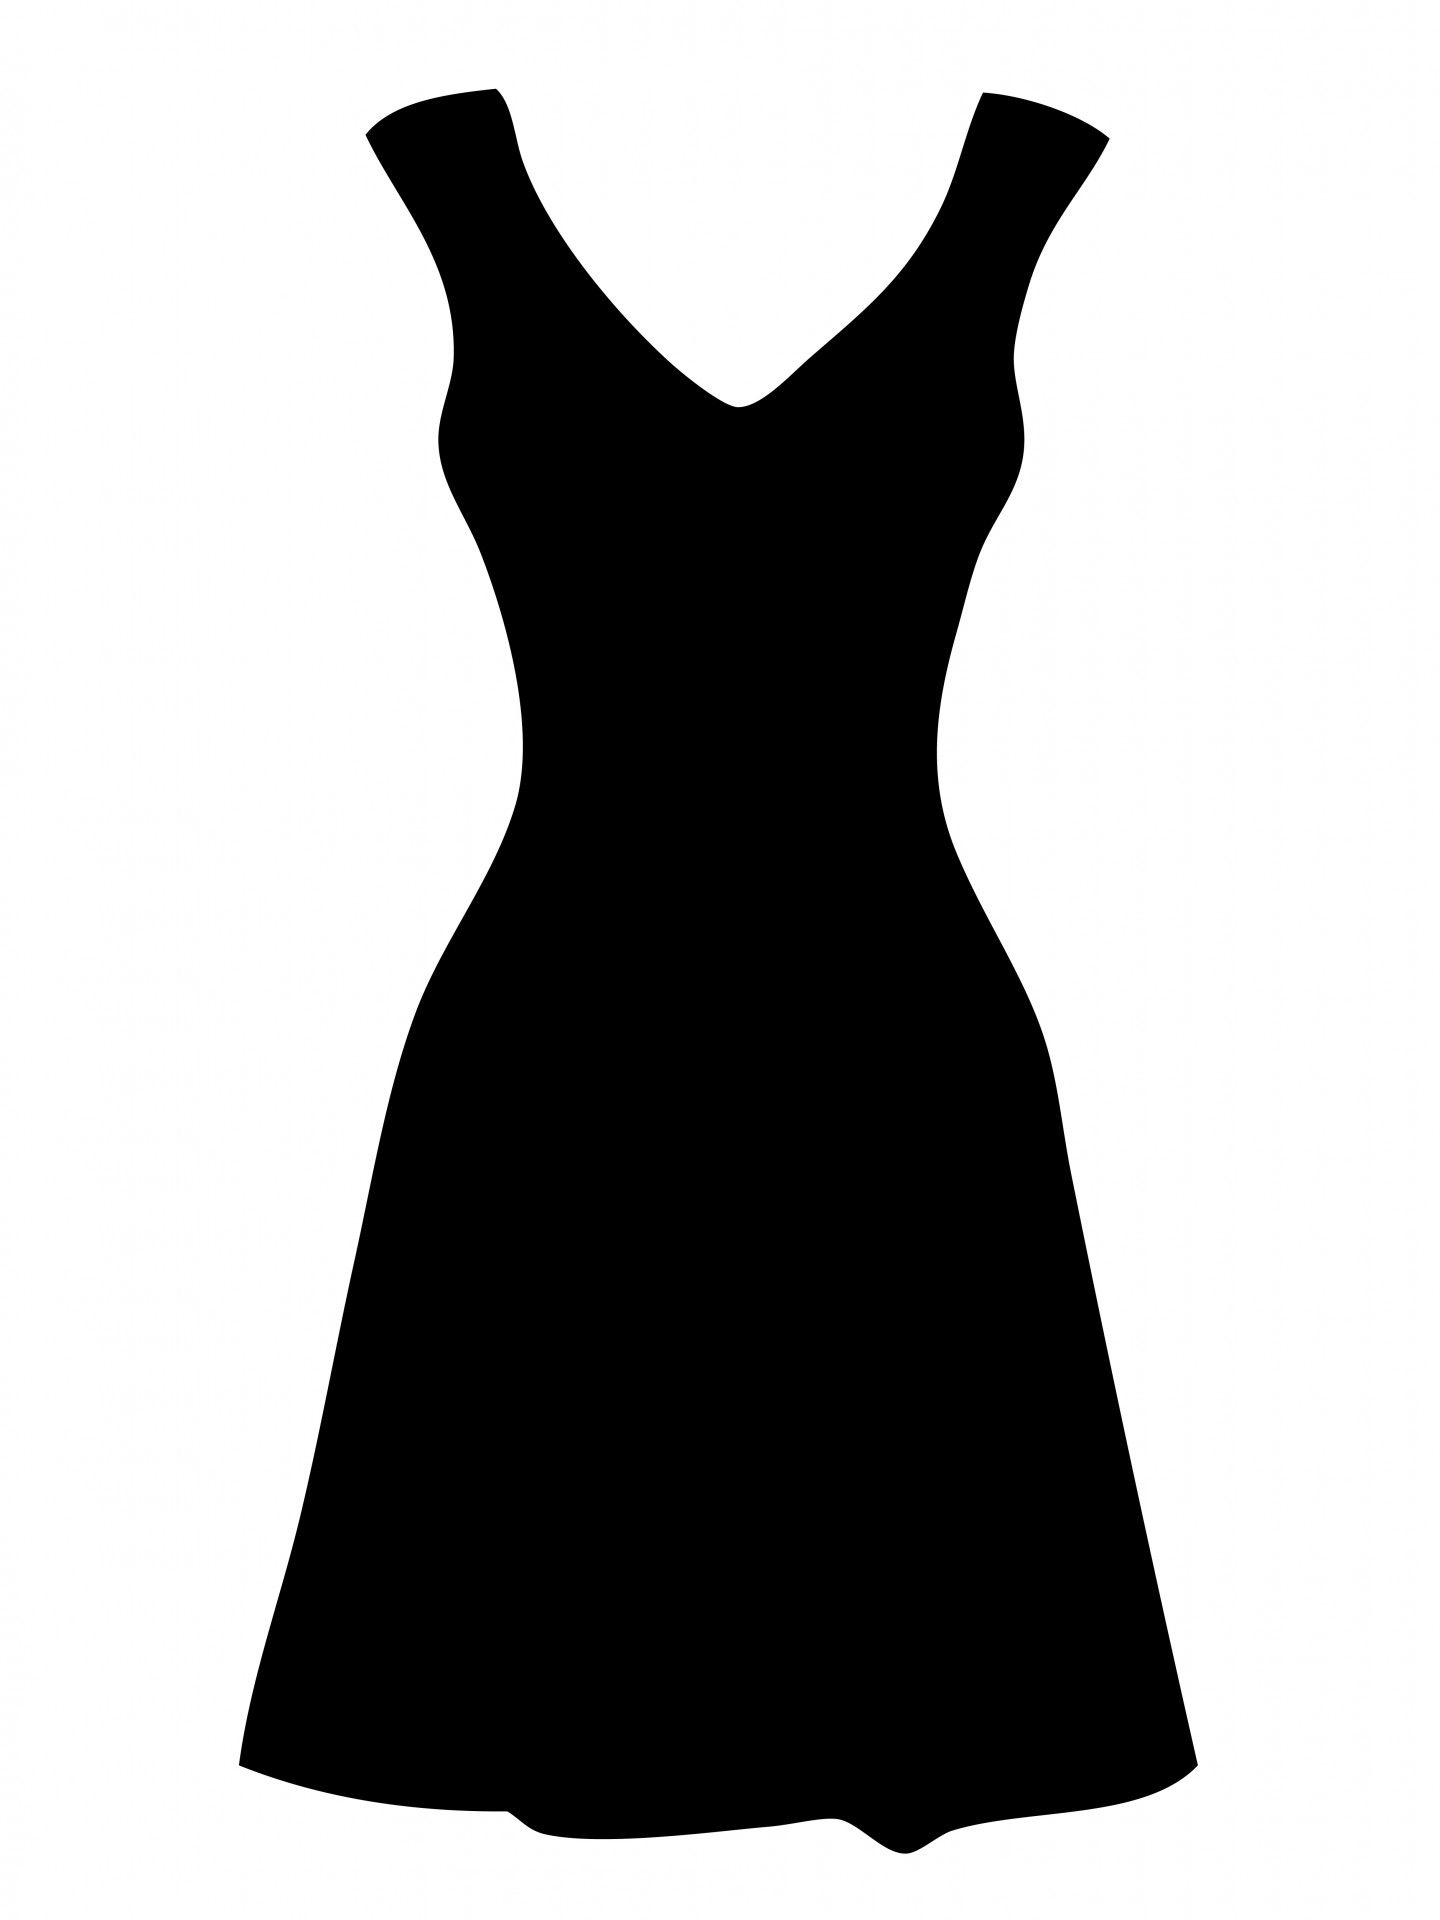 bridesmaid silhouette clip art at getdrawings com free for rh getdrawings com dress clipart transparent dress clipart transparent